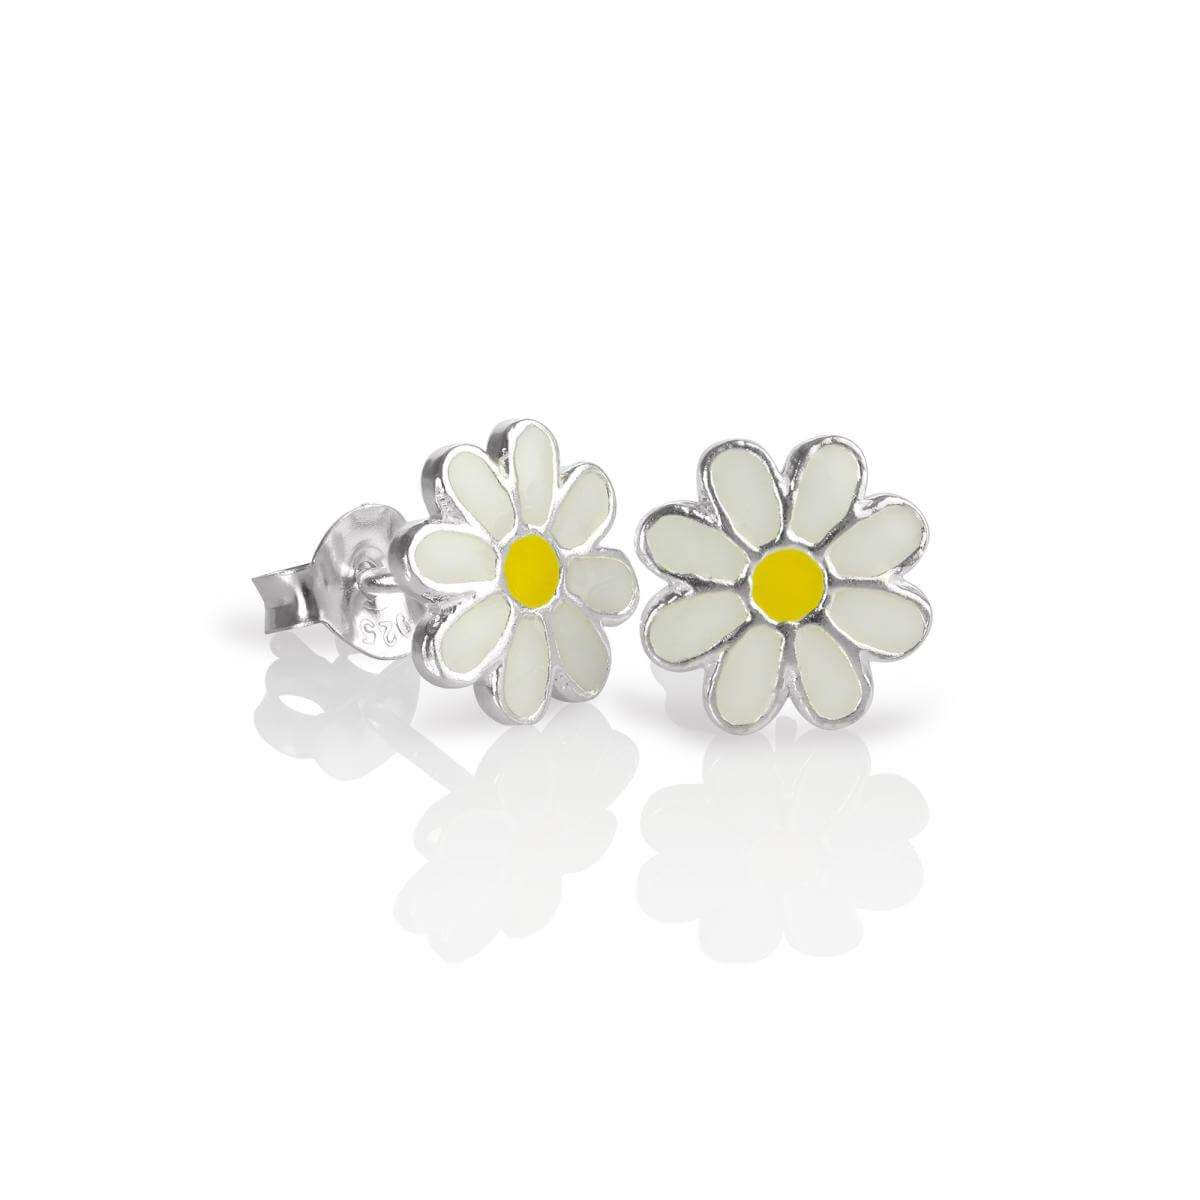 Sterling Silver & Enamel Flat Flower Stud Earrings - White